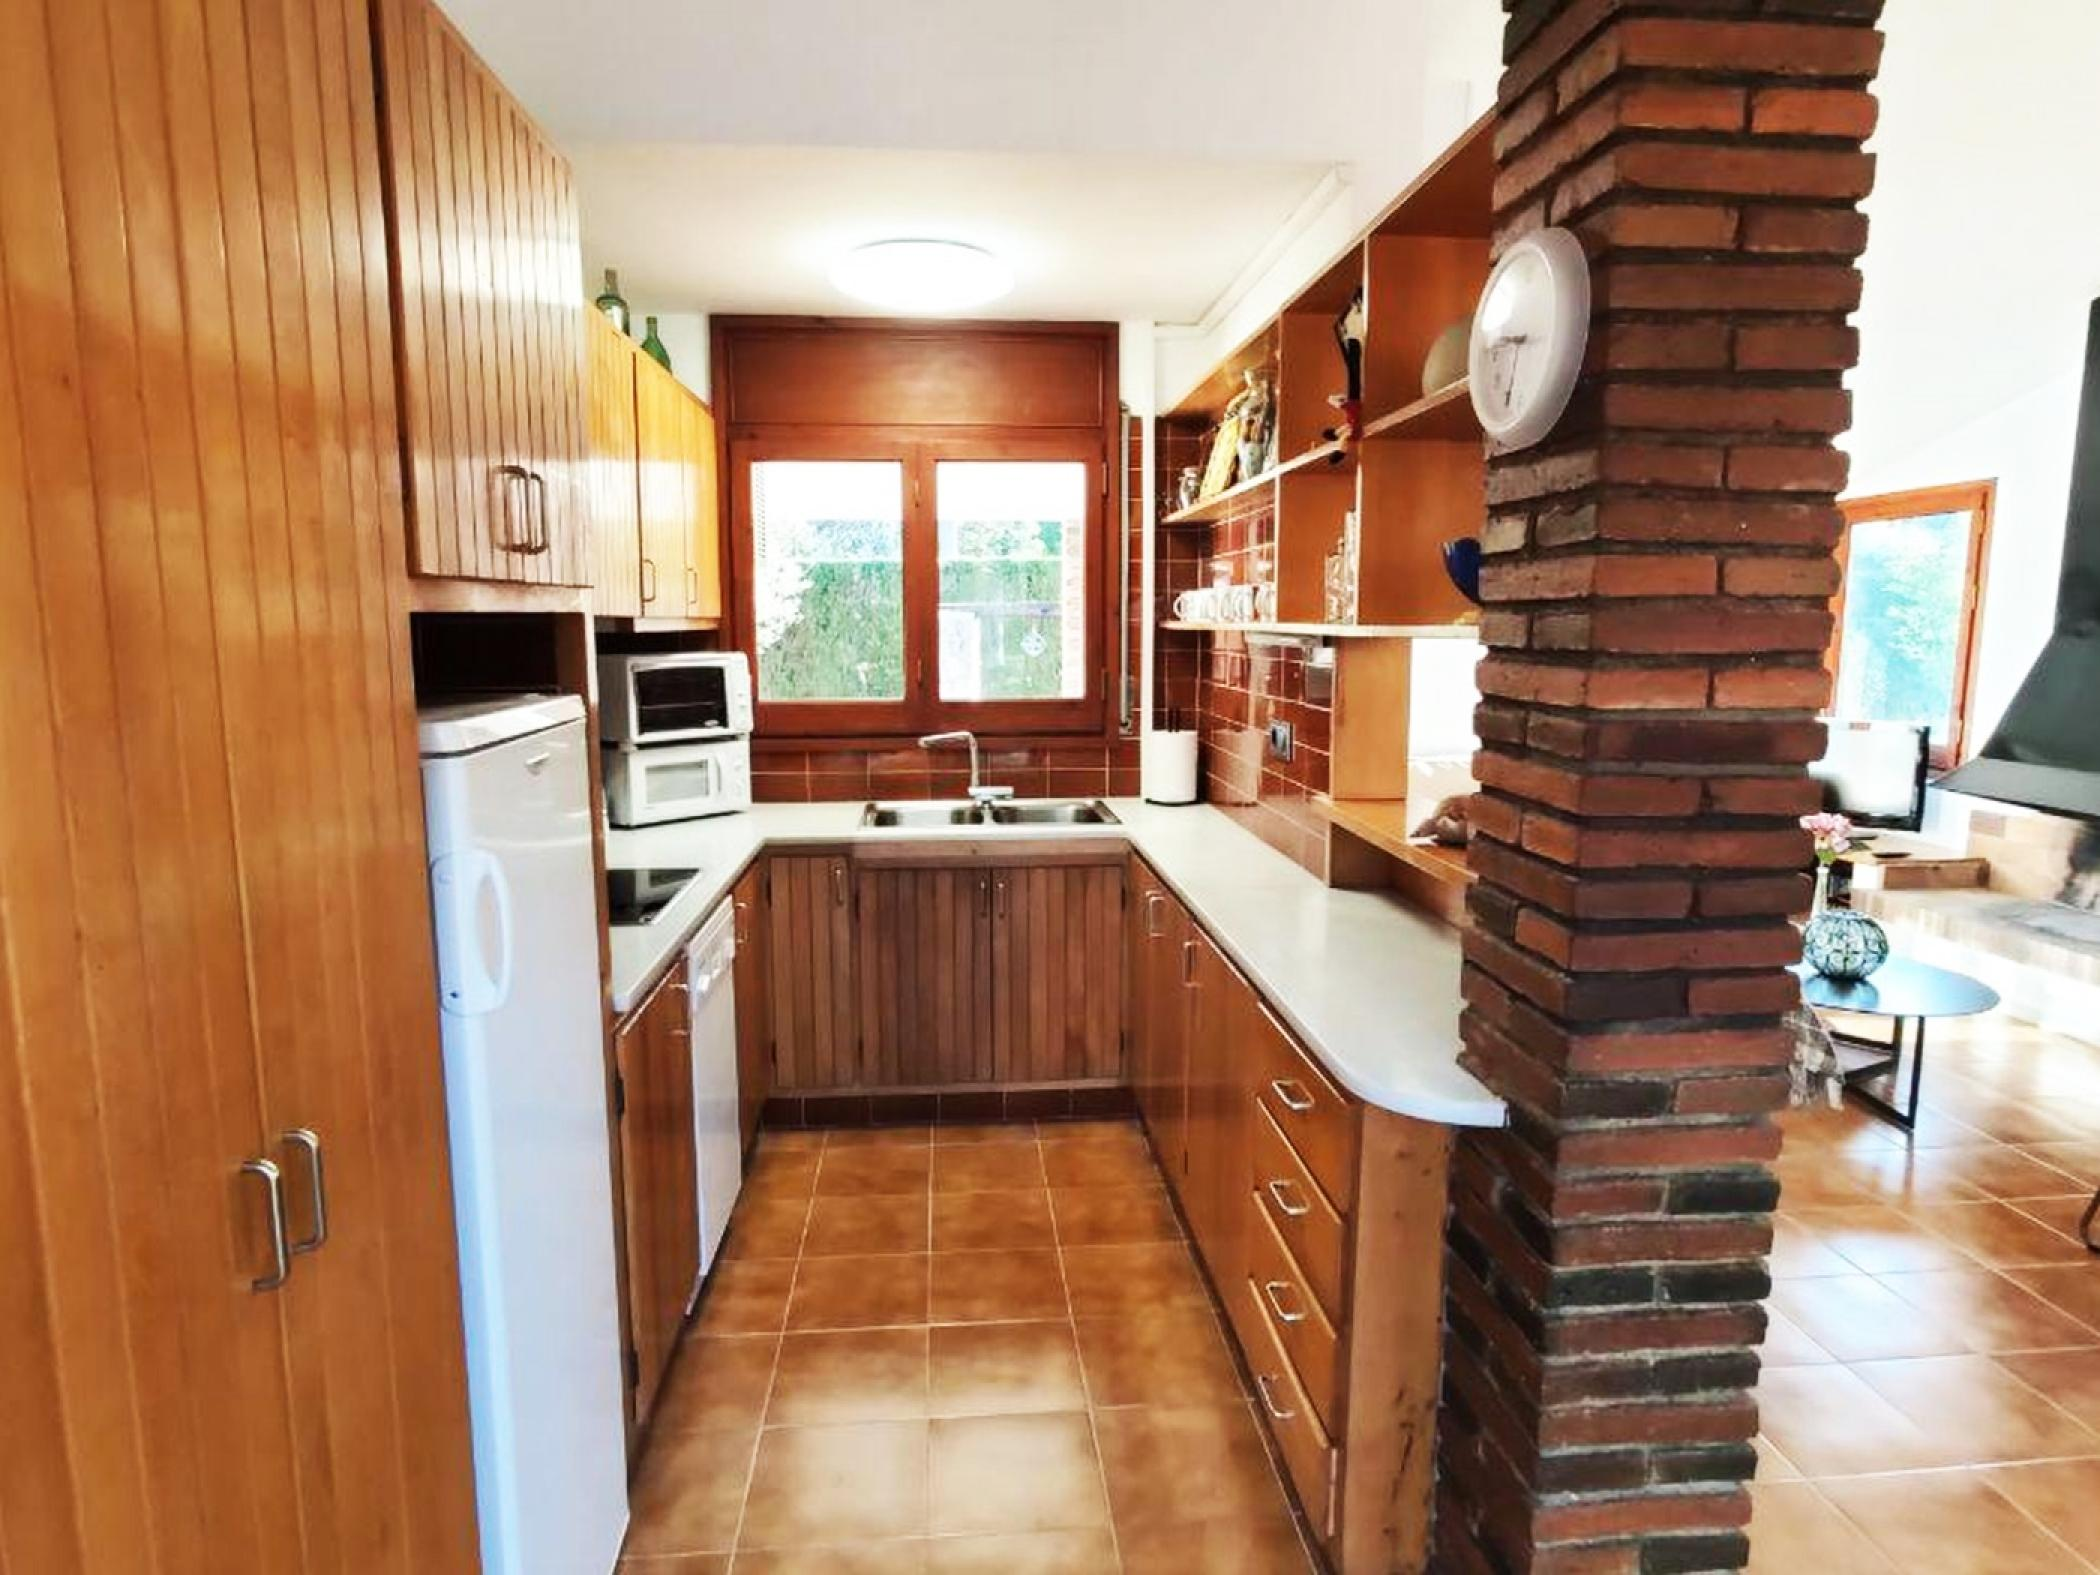 Rent Villa with Swimming pool in Caldes de Malavella - Villa a Caldes de Malavella Molins - 5